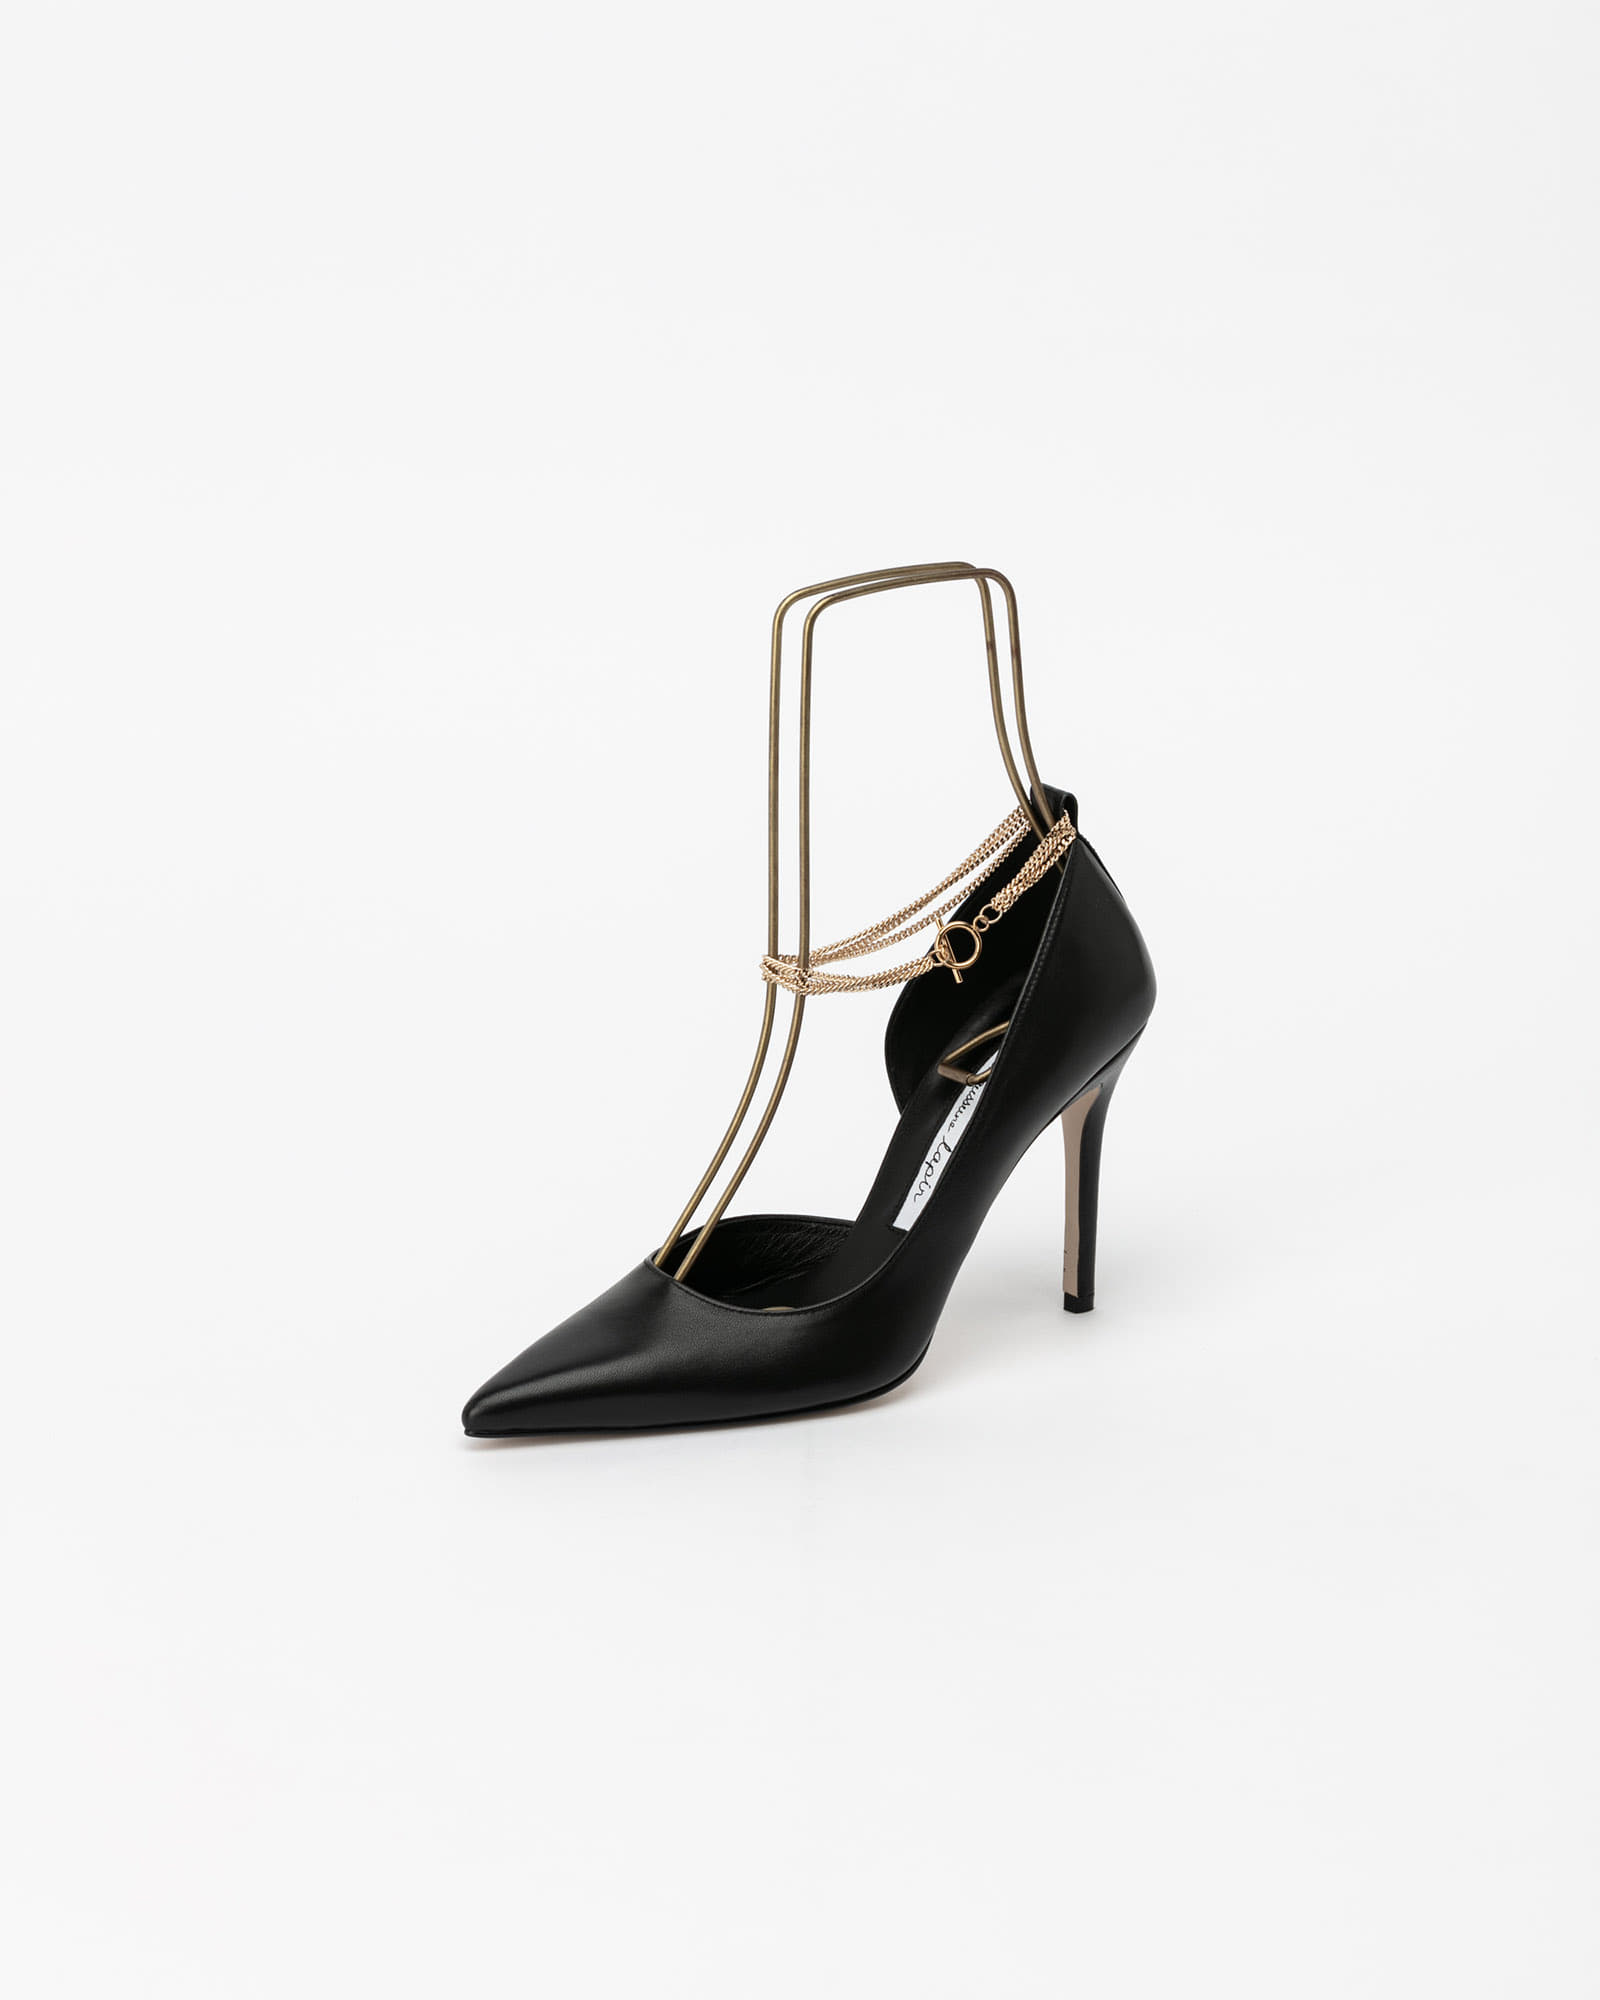 Cinque Chained Stiletto Pumps in Black